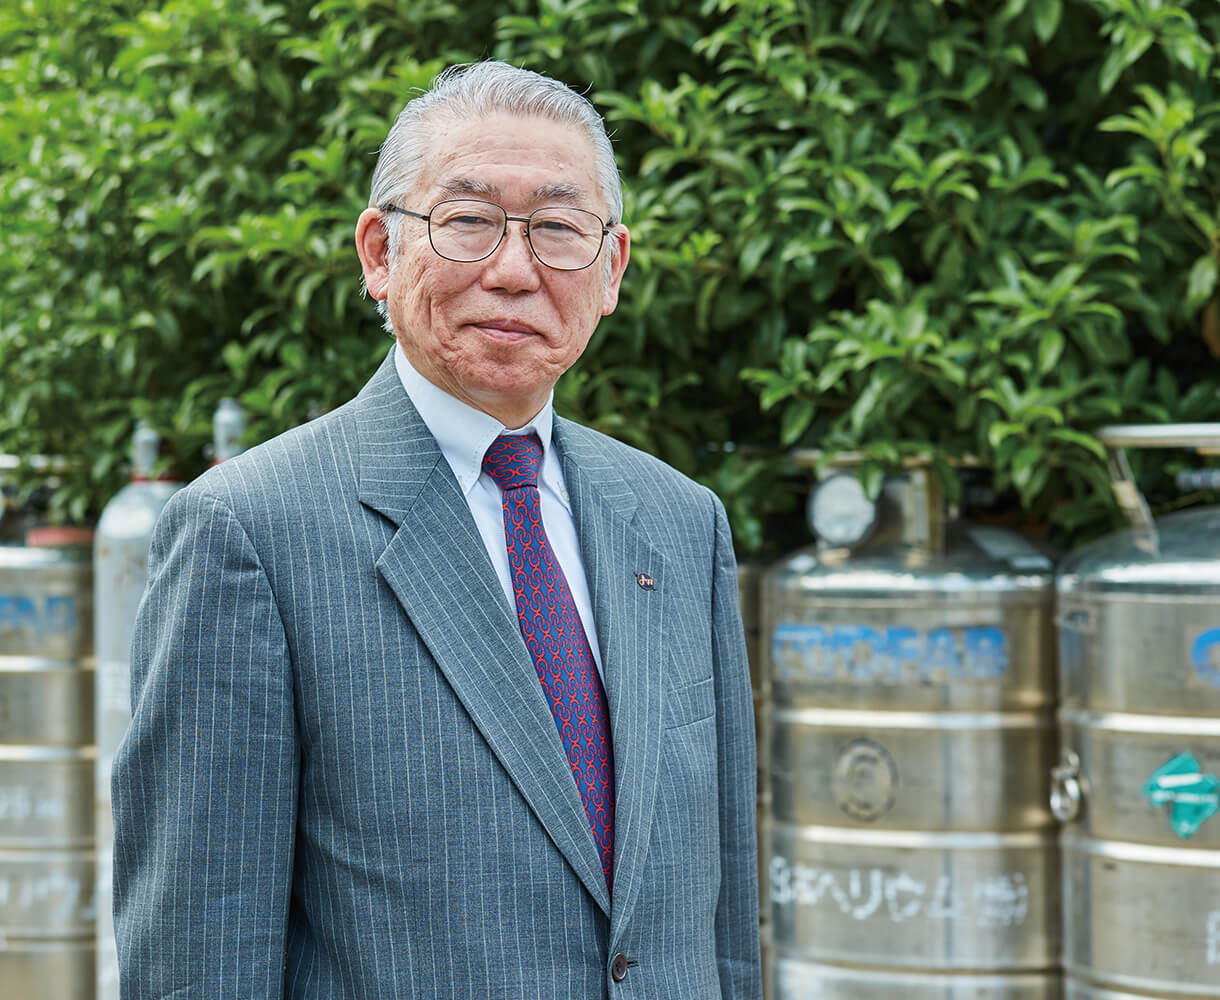 President and CEO Ken Hagiwara